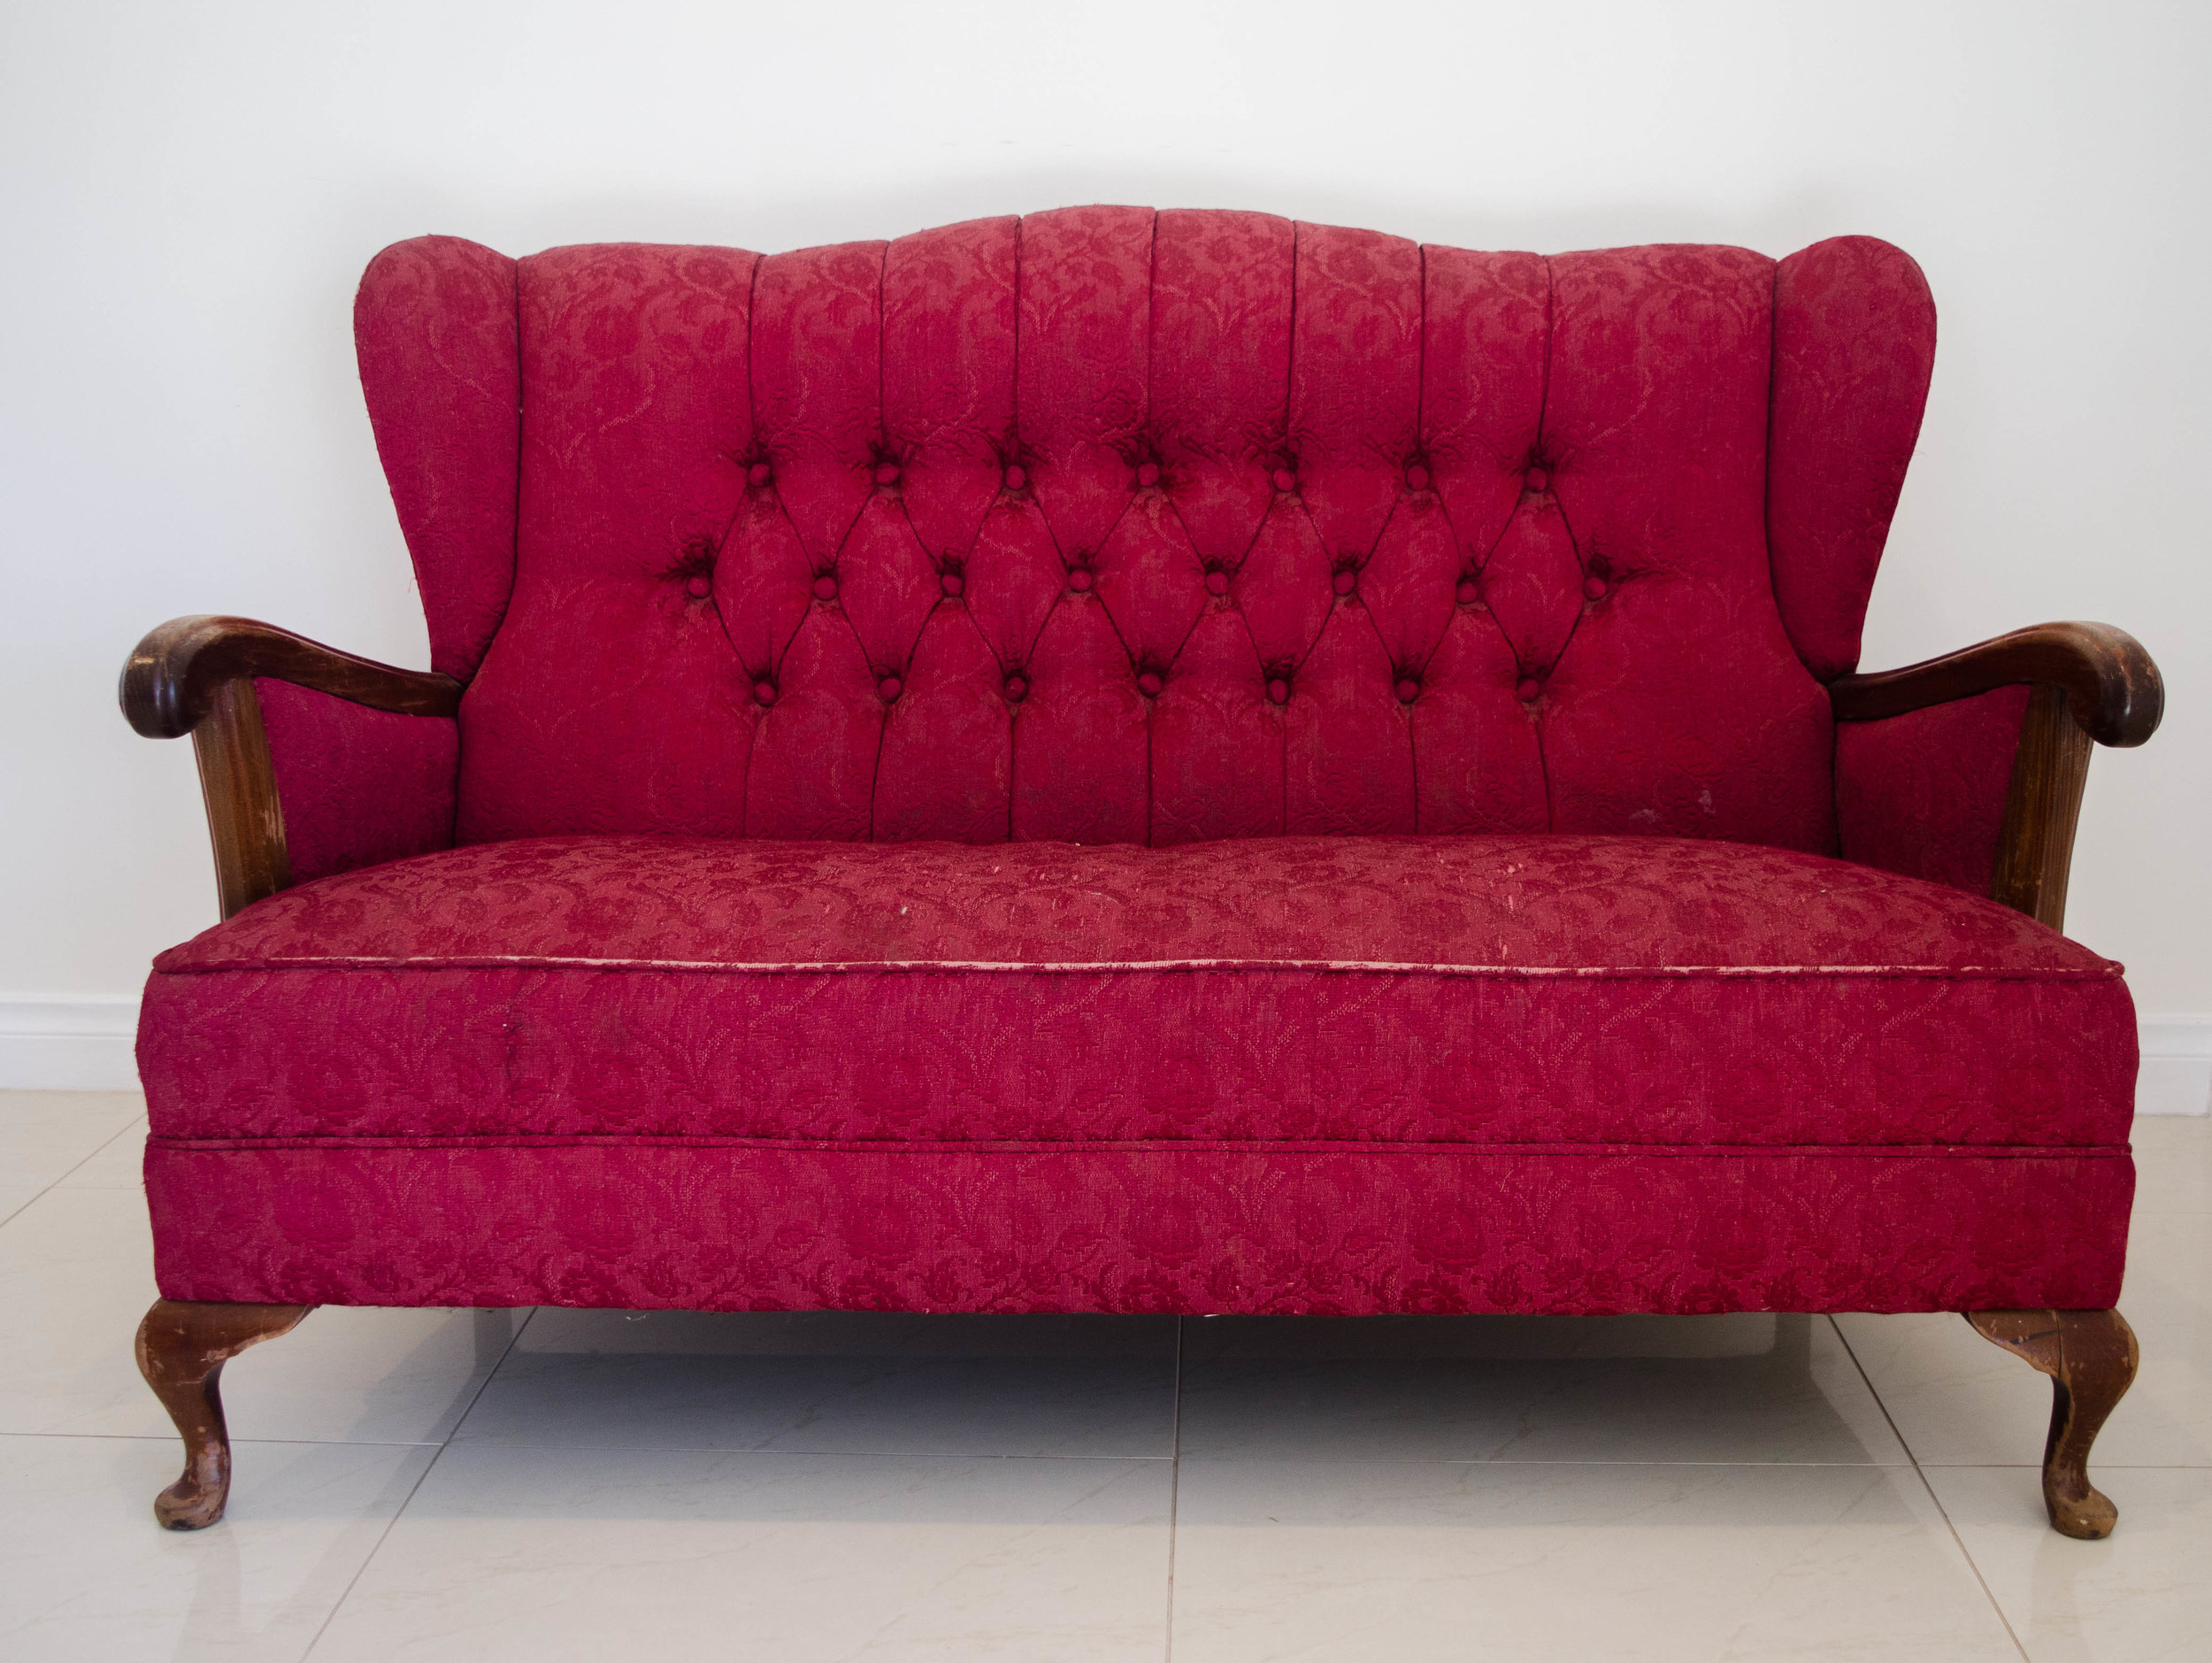 Juliet Red Lounge   $120.00 + GST (3-DAY HIRE)                                            QUANTITY: 1